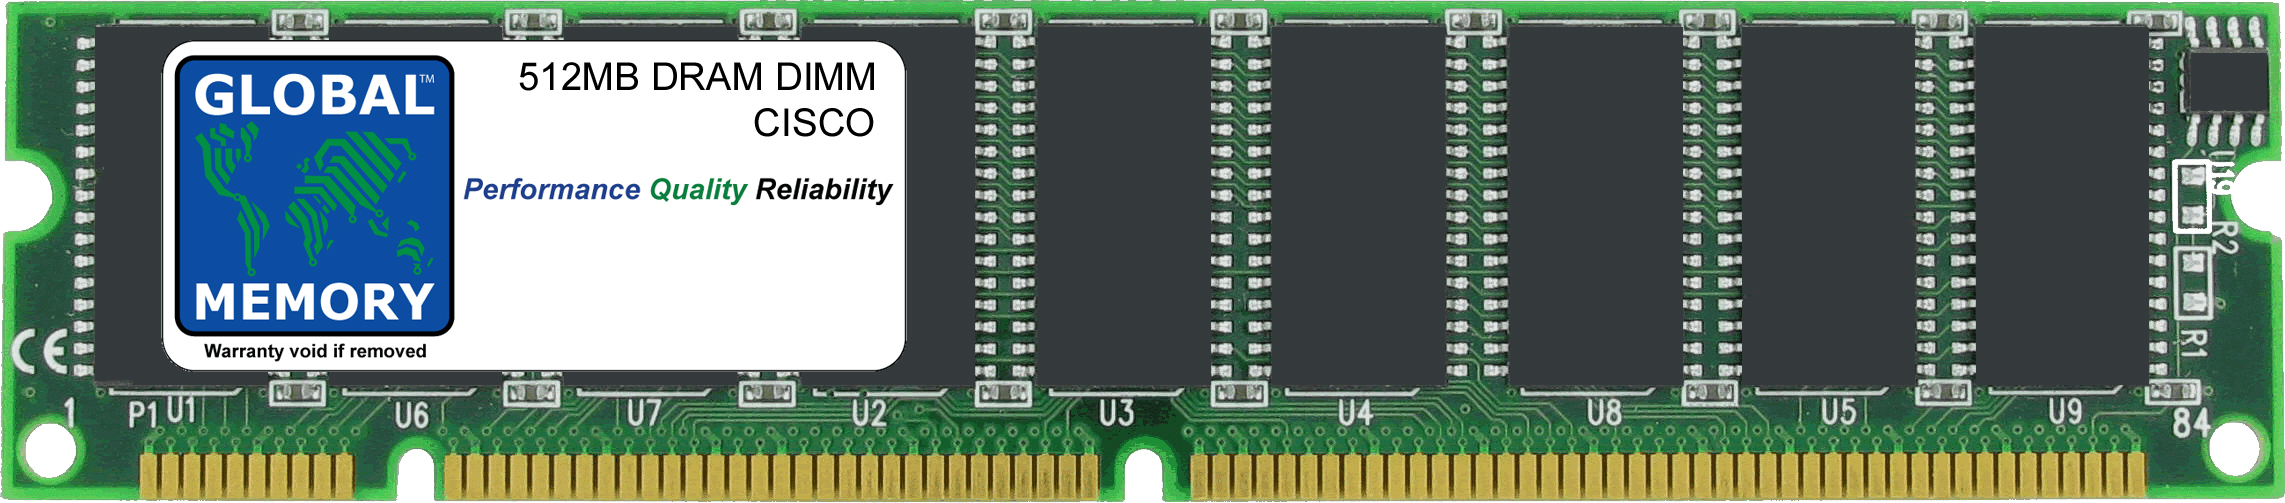 512MB DRAM DIMM MEMORY RAM FOR CISCO 12000 SERIES ROUTERS GRP-B LINE CARD (MEM-GRP-512)